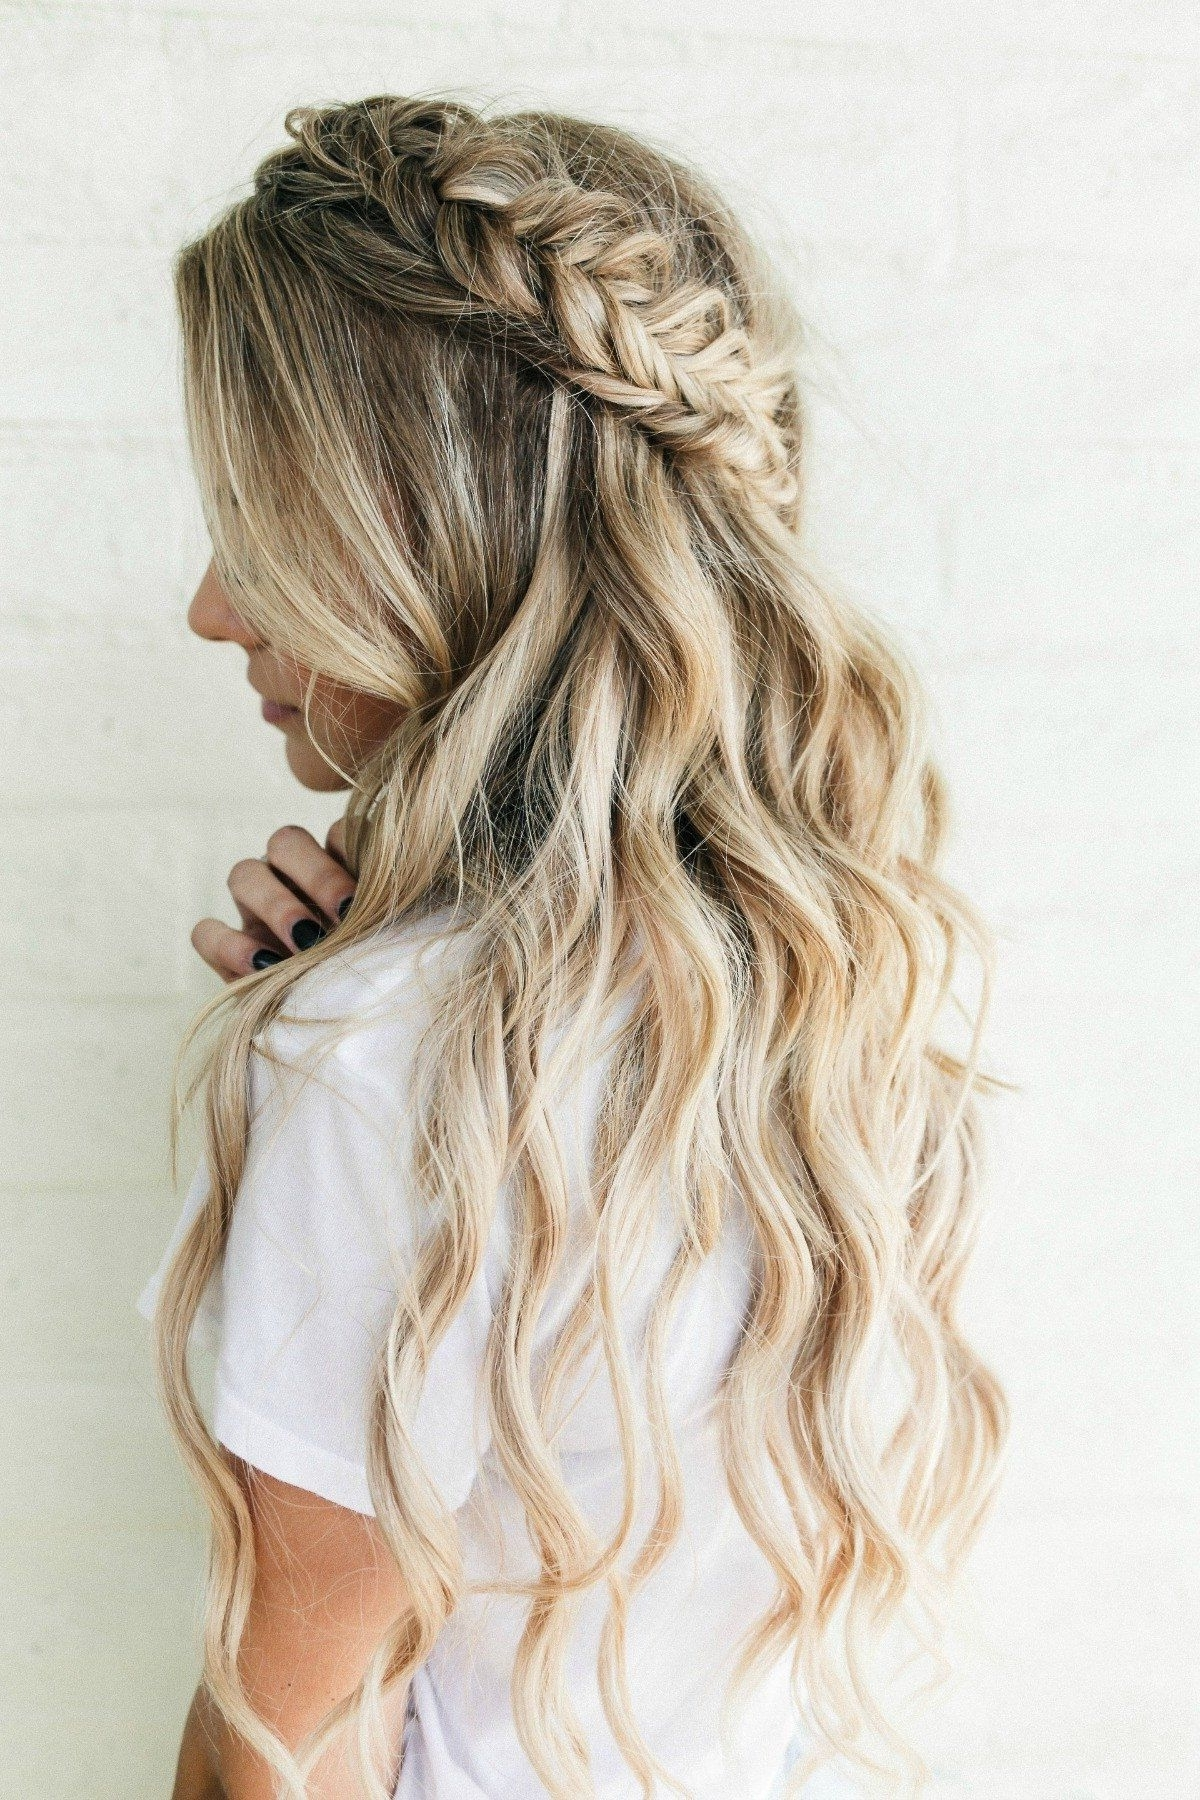 Barefoot Blonde, Blonde Hair Pertaining To Most Current Braided Crown With Loose Curls (View 2 of 15)